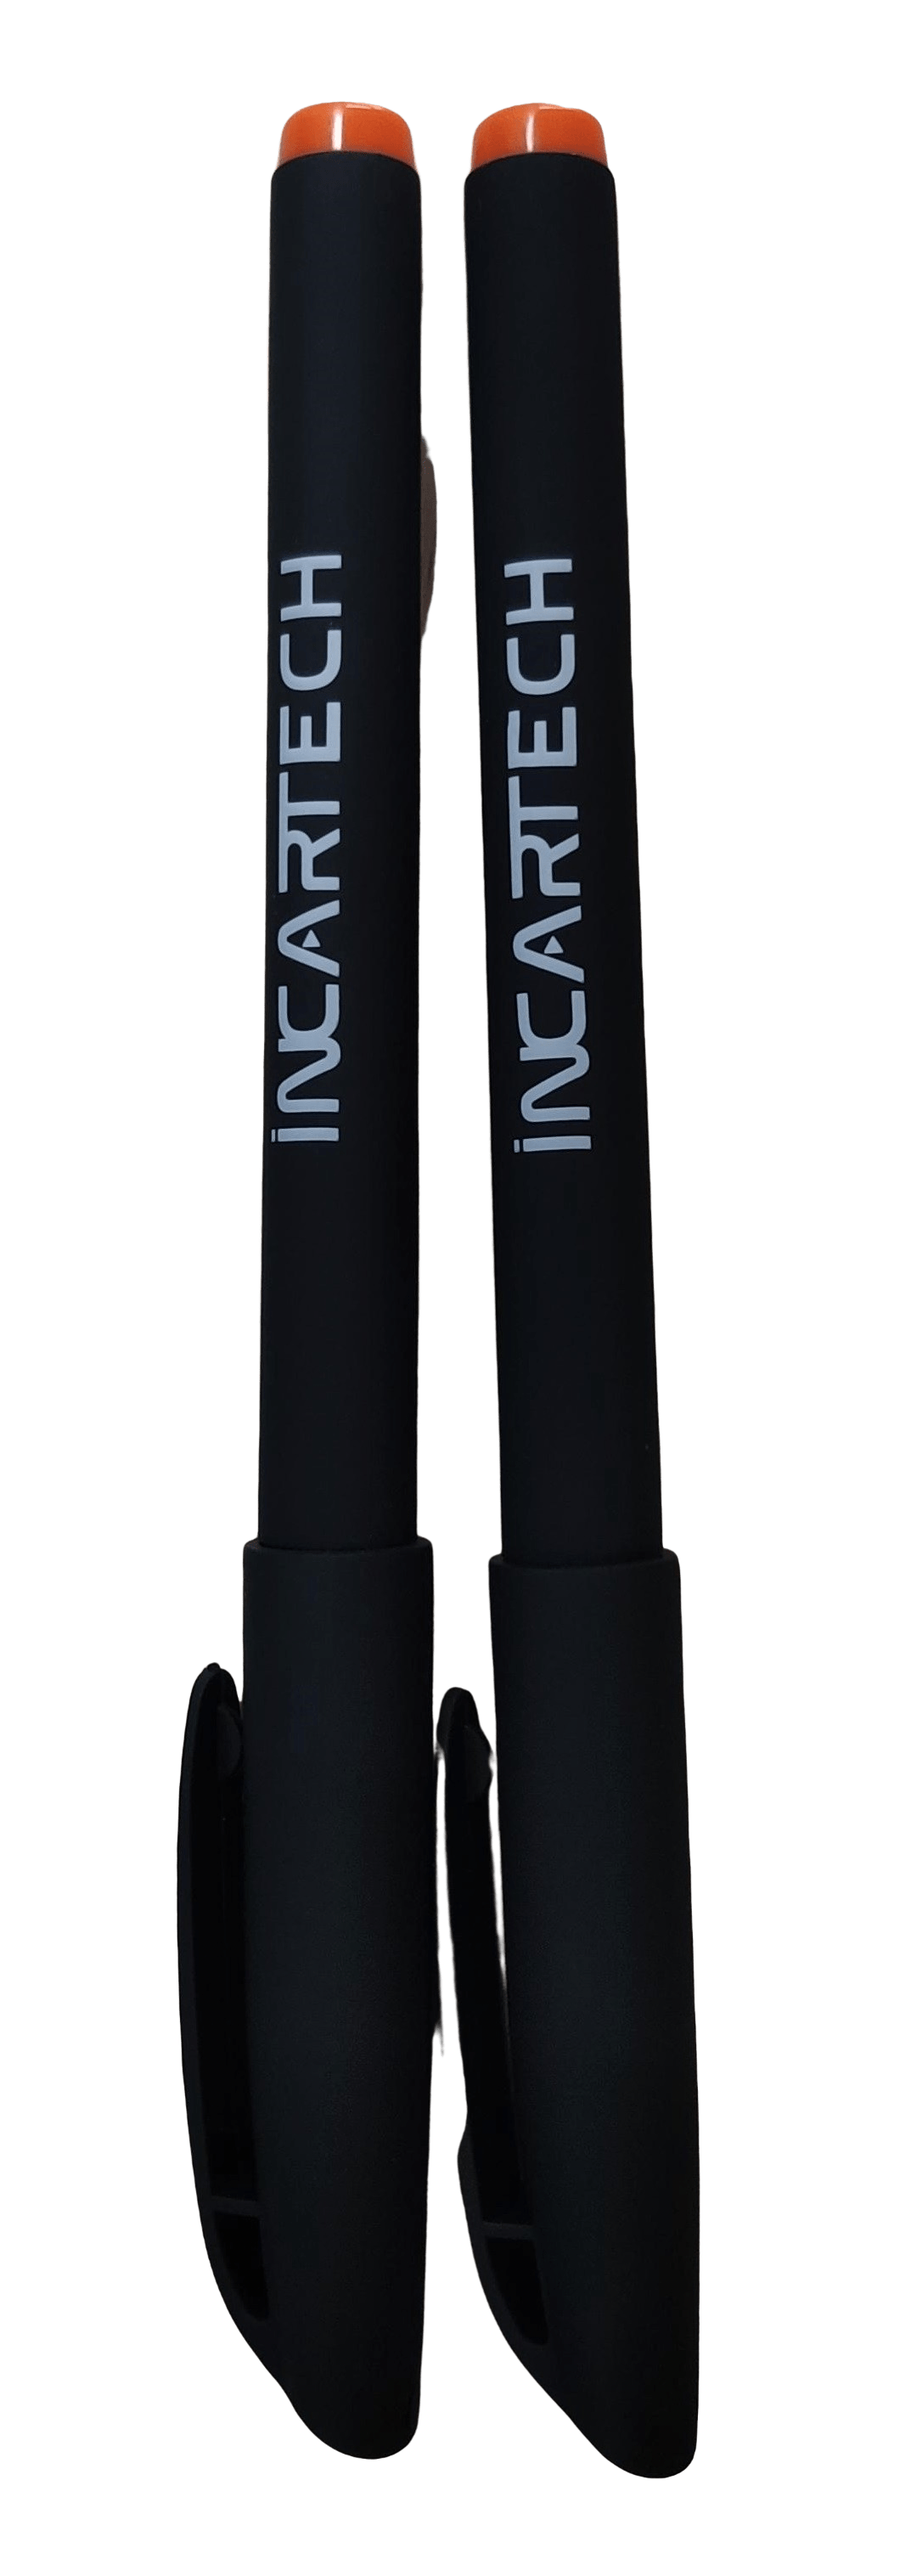 Personalised black marker pens with a white colour logo.